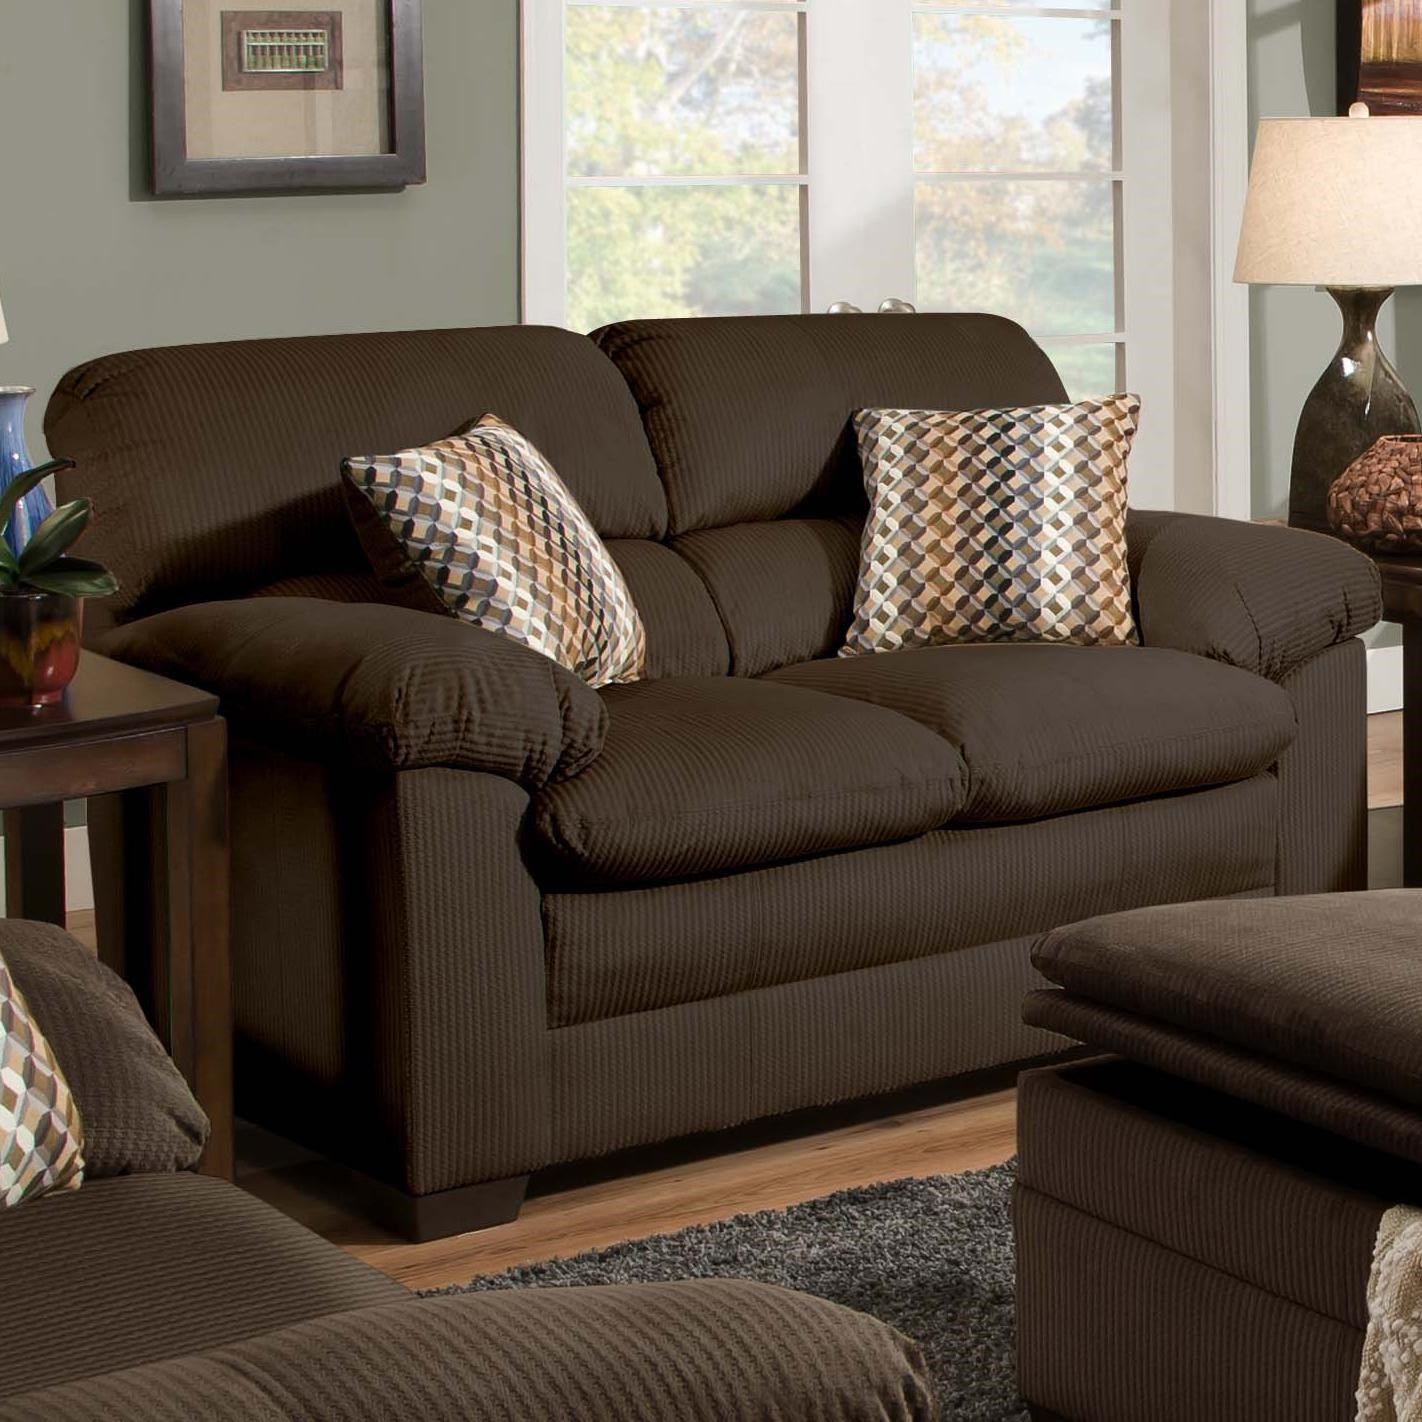 United Furniture Industries 3685 Casual Loveseat With Pillow Arms